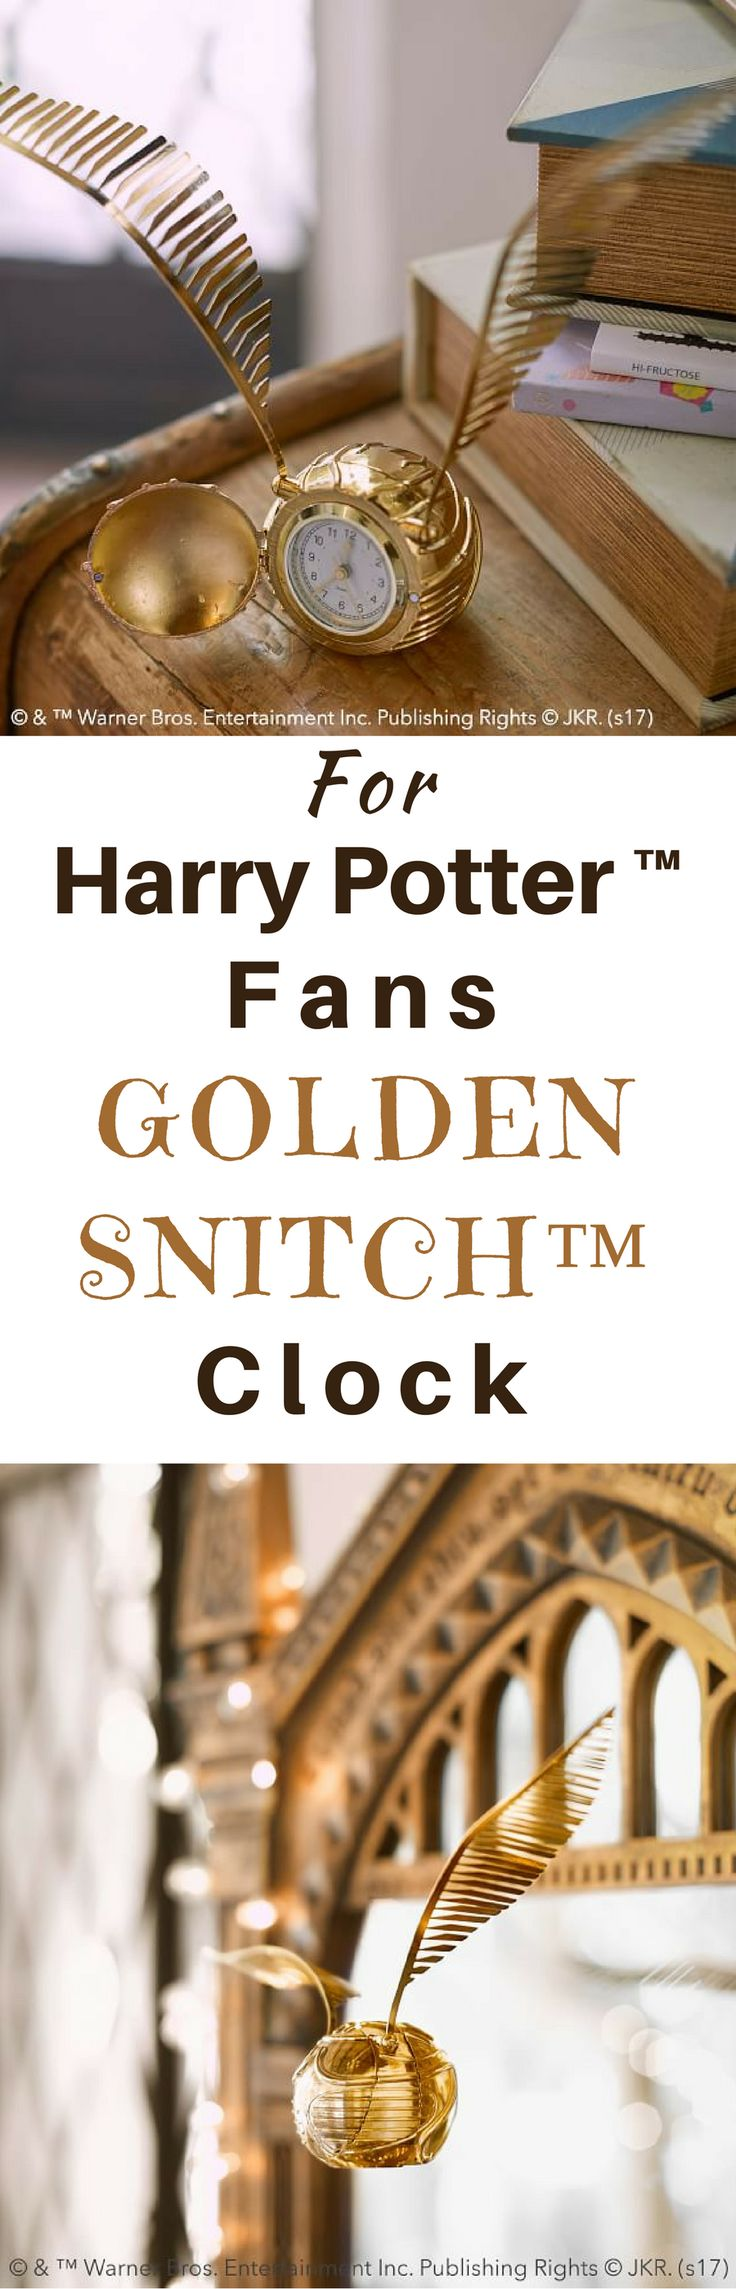 This is awesome Harry Potter GOLDEN SNITCH™ Clock! Love it, love it, love it! Great gift idea for Harry Potter fans! NNT #afflink #Harrypotter #harrypotterfan #harrypotterforever #bestseller #giftideas #GIFTIDEA #gift #christmasgifts #christmas harry potter | harry potter tattoo | harry potter funny | harry potter party | harry potter costume | Harry Potter Film | Harry Potter | Harry Potter Hub | Harry Potter | Harry Potter...Always | ⚡Harry Potter⚡ | golden snitch | Golden Snitch |